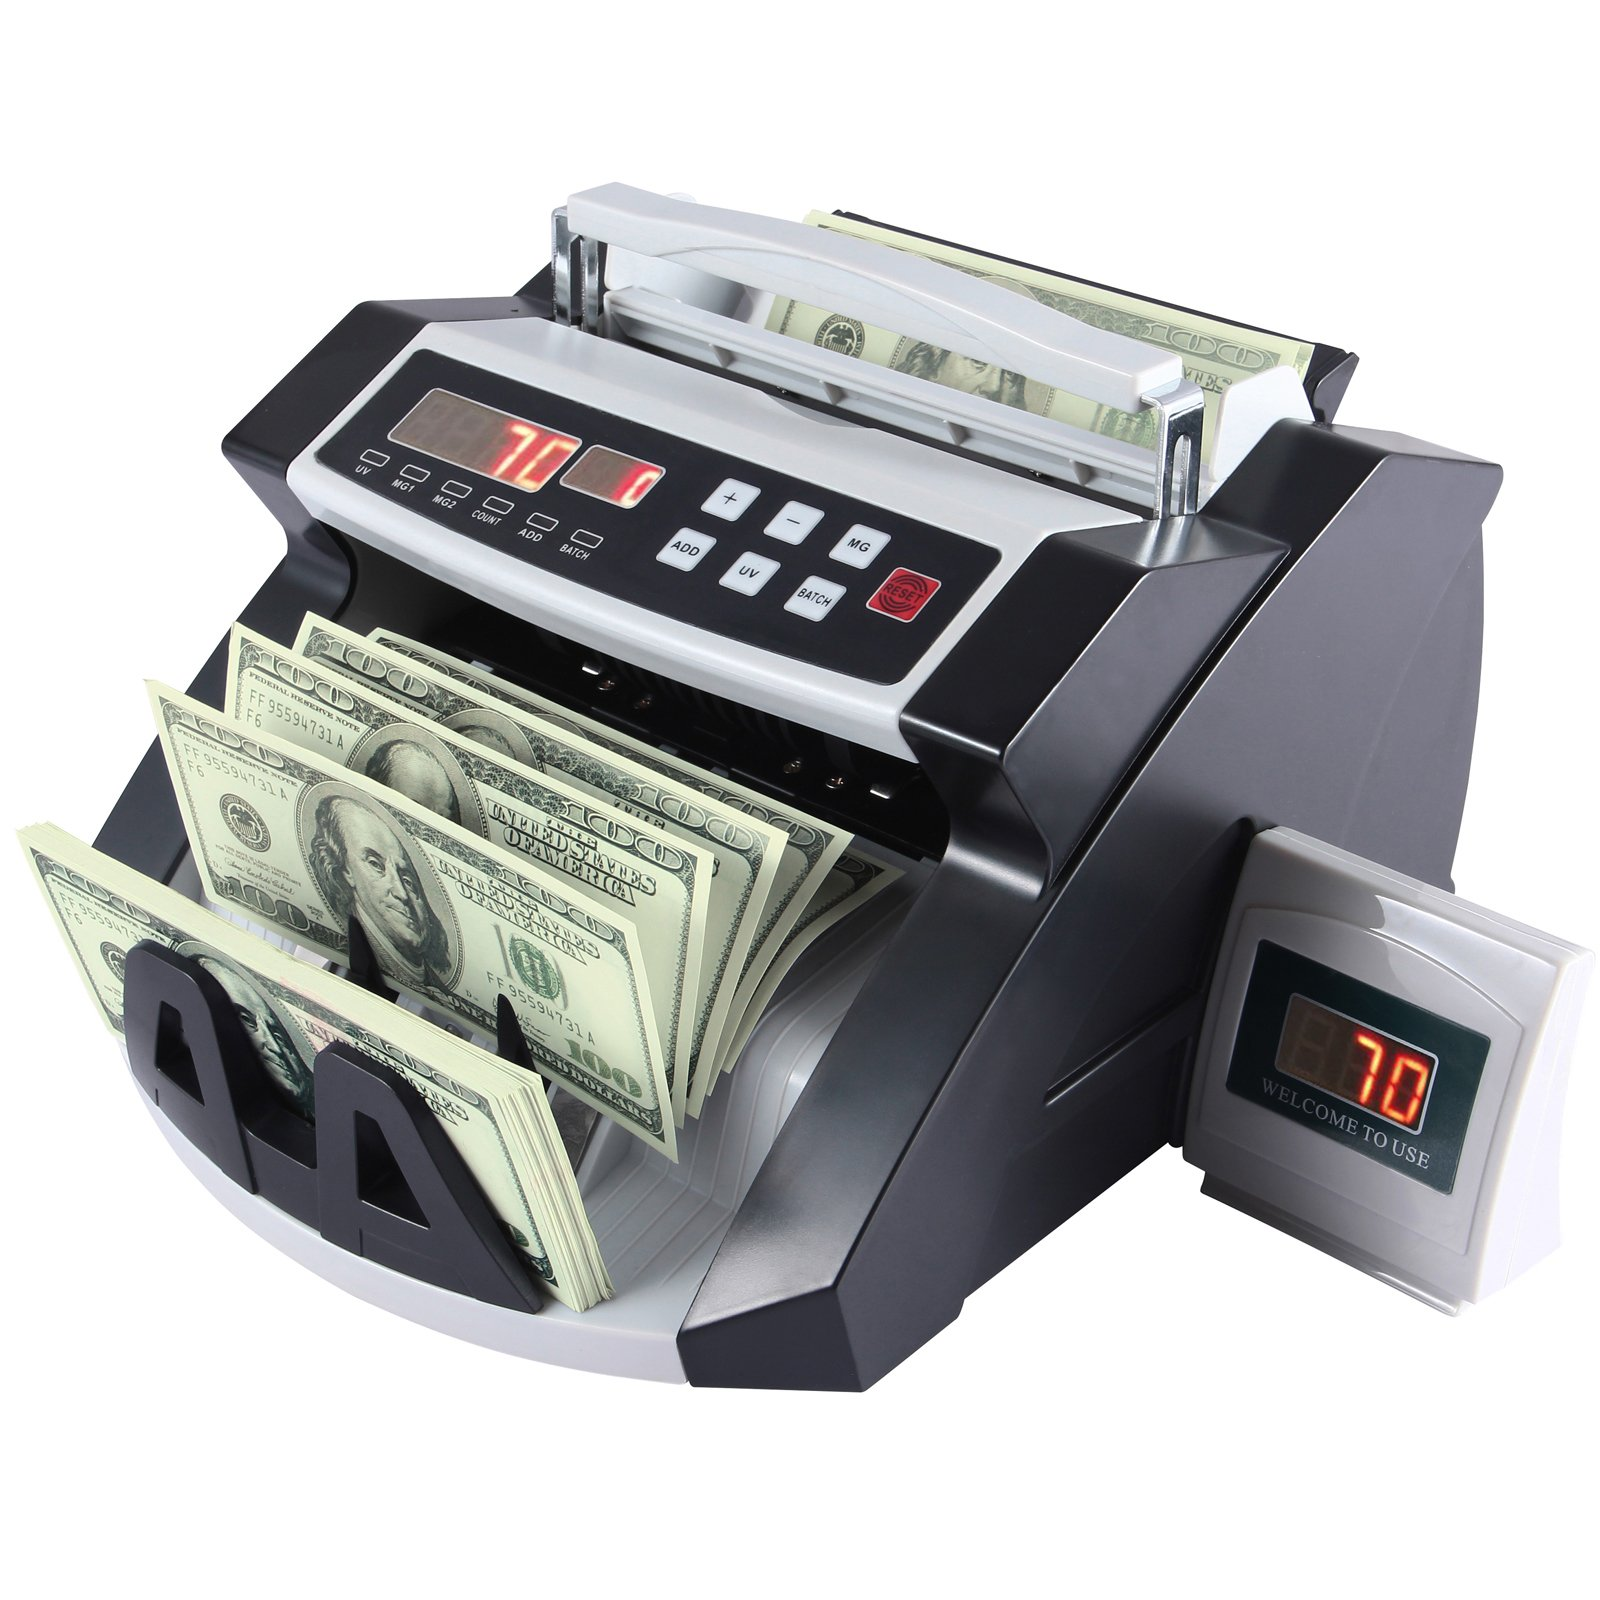 Cash Bill Counter-KUPPET Worldwide Money Currency Counting Machine-Bank Counterfeit Detector with Automatic Ultra Violet & Magnetic Detection Systems and LCD Display-Grey